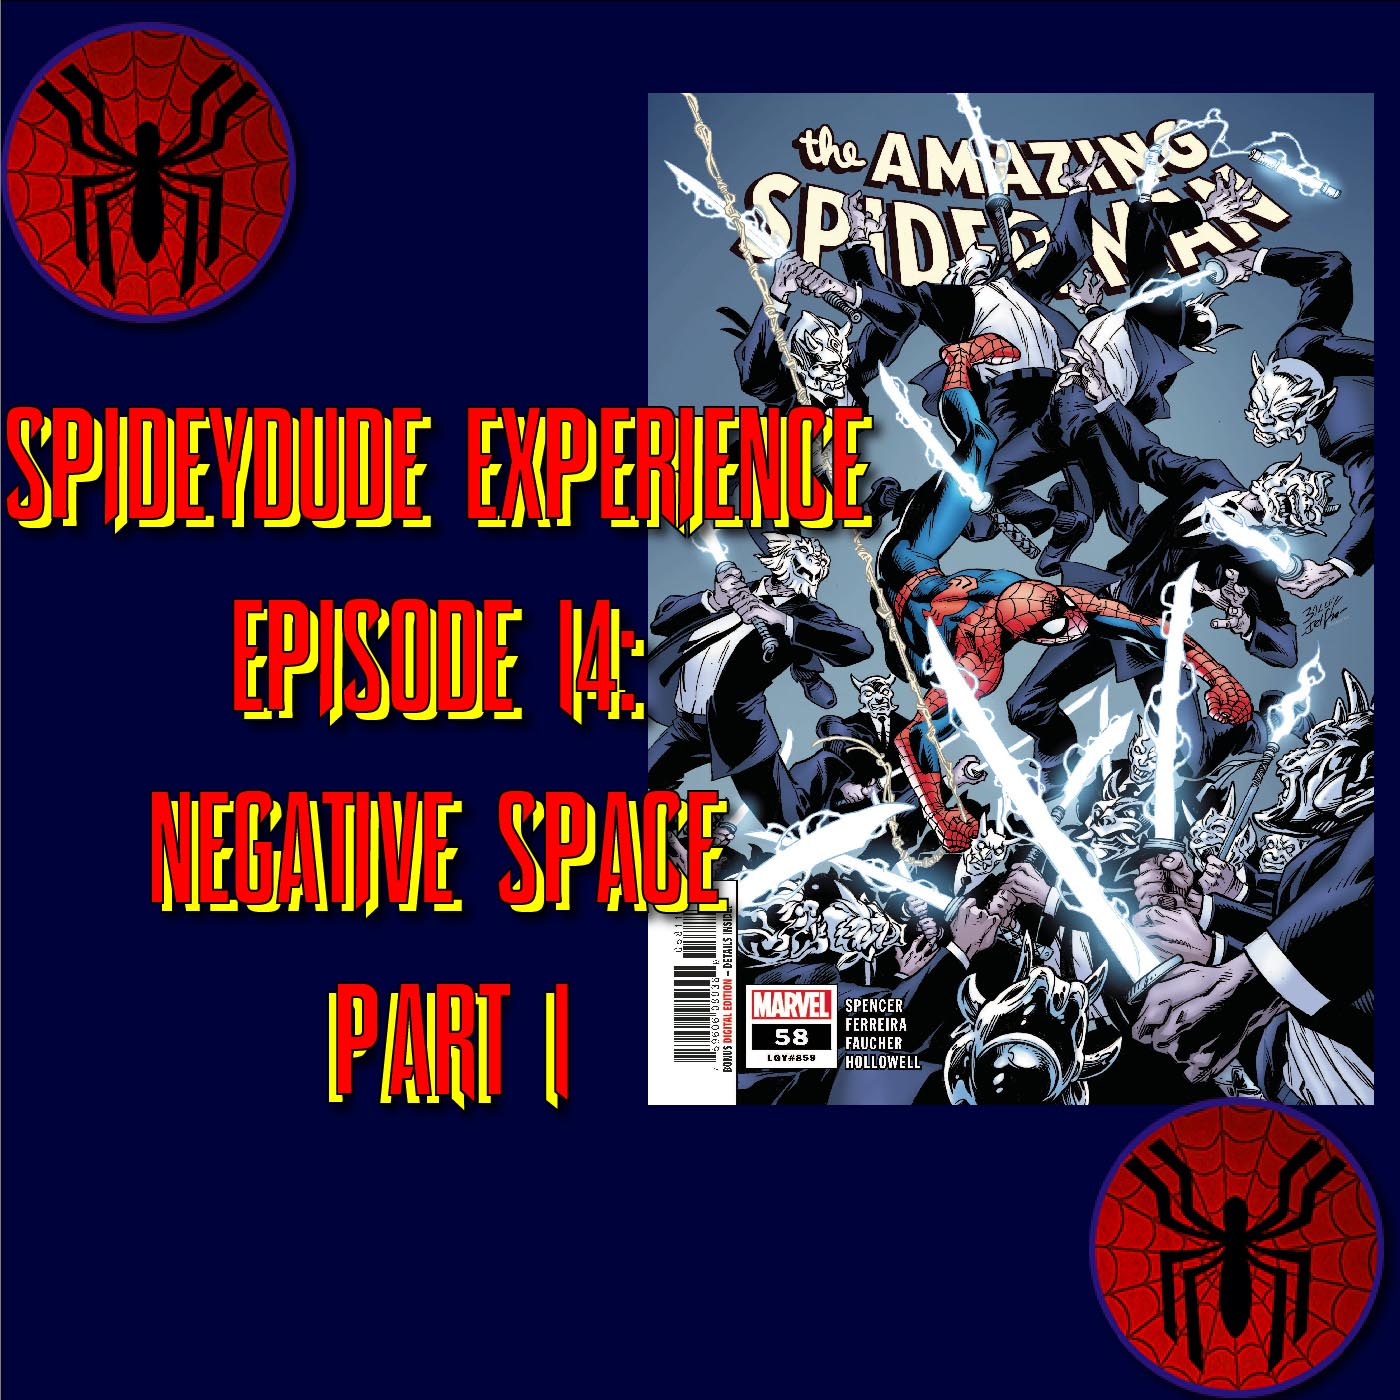 "Spidey-Dude Experience Episode 14: ASM 859 ""Negative Space Part 1"""